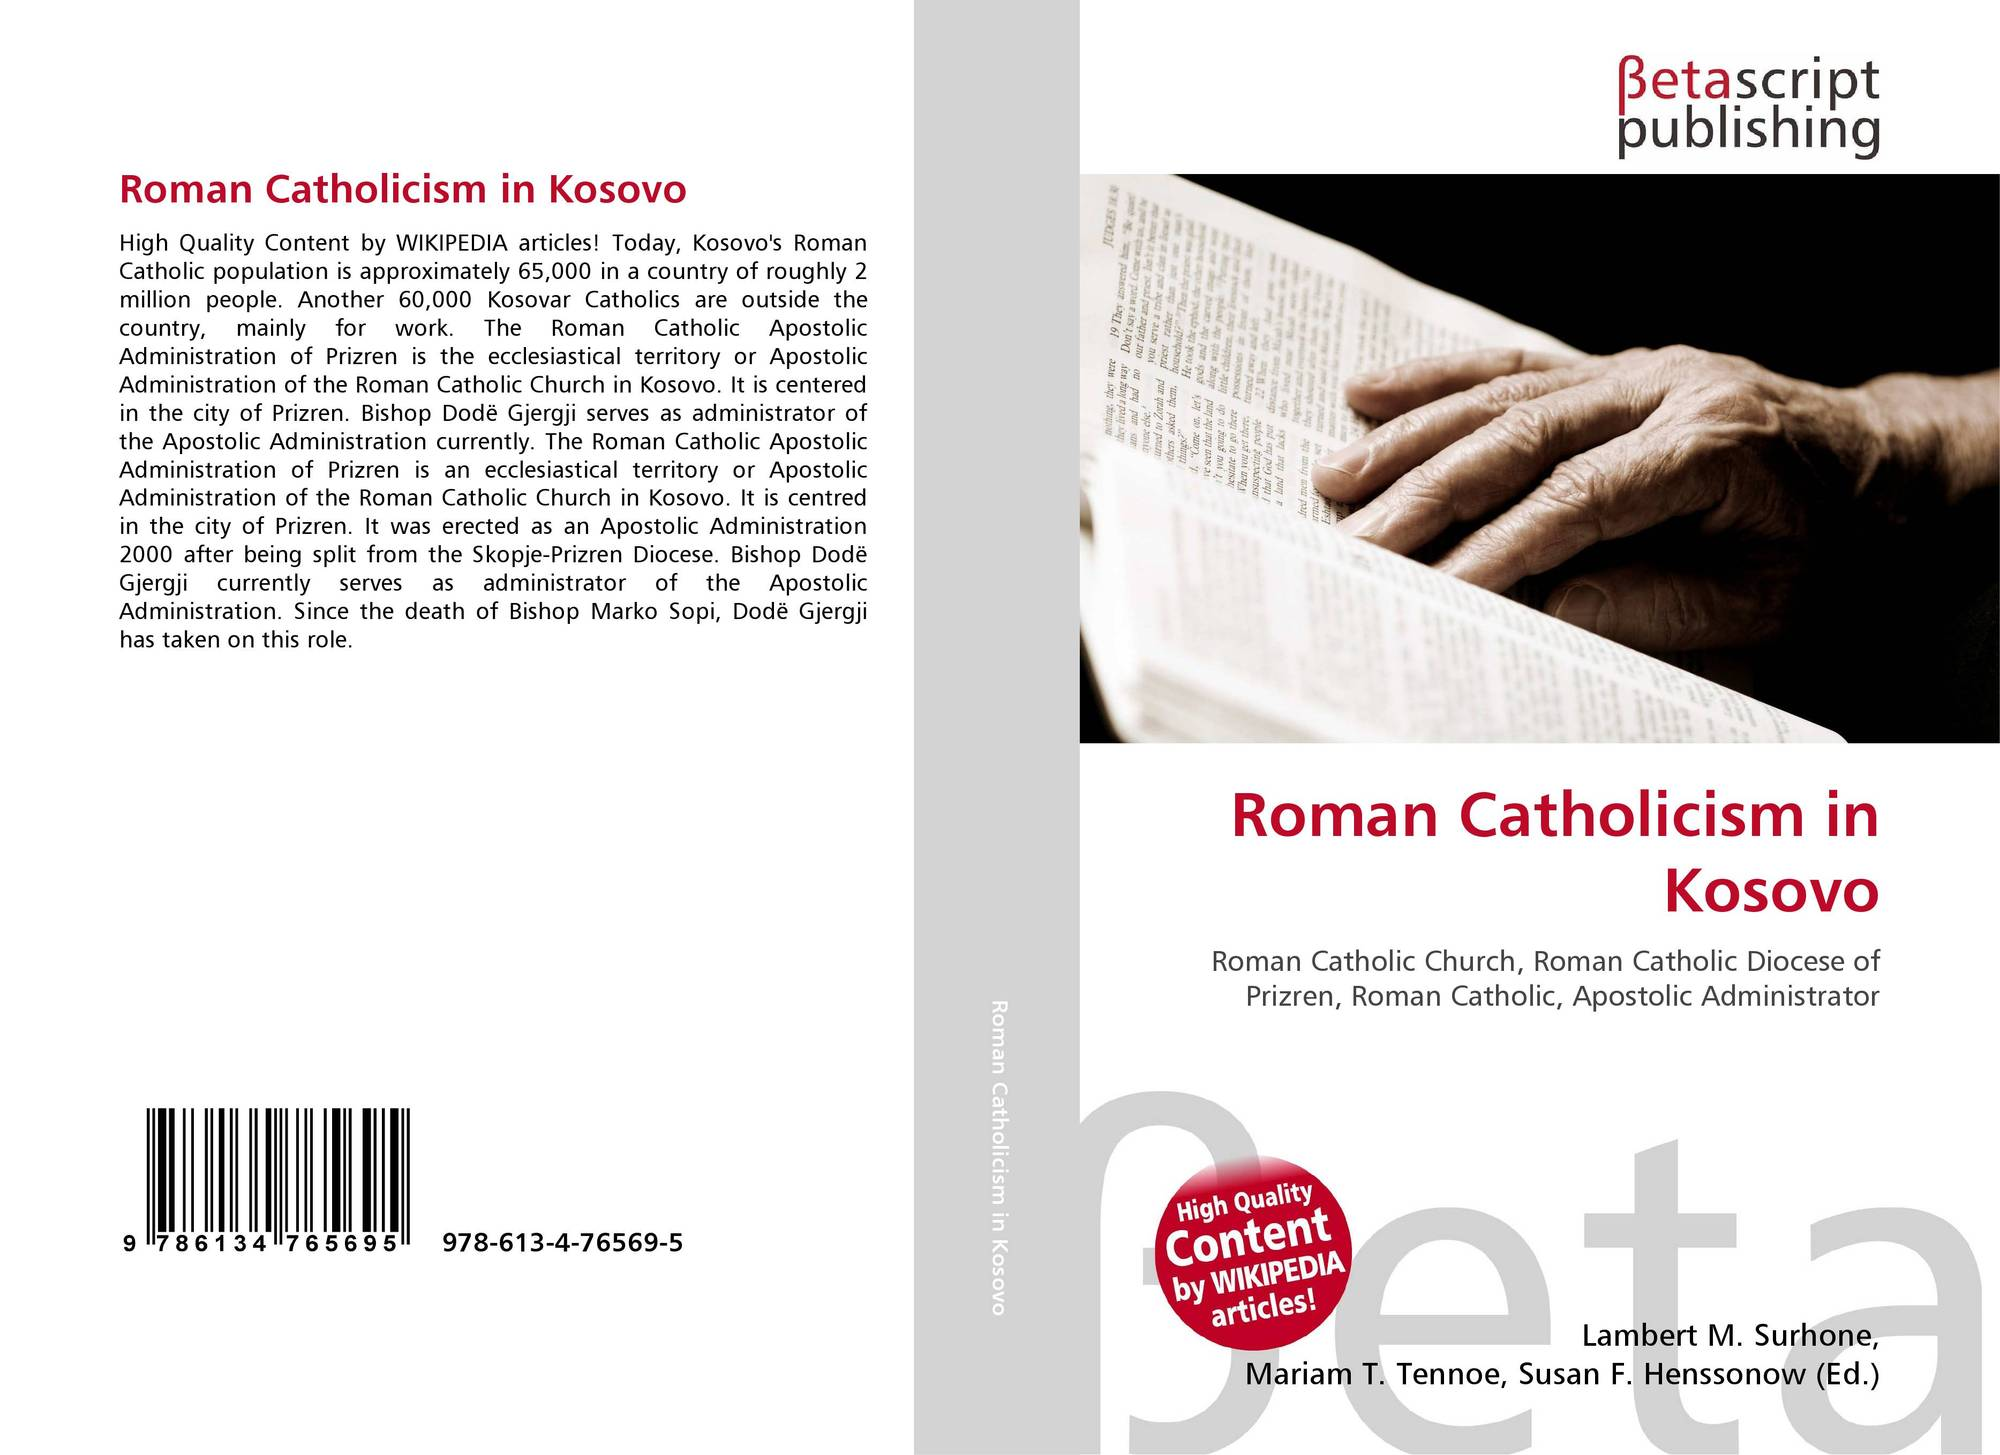 an introduction to the comparison of anglicanism and roman catholicism The vatican's october announcement of a special process to admit anglicans to the roman catholic church raised questions for many who perhaps thought that crossing the tiber would require a major shift in belief for anglicans.